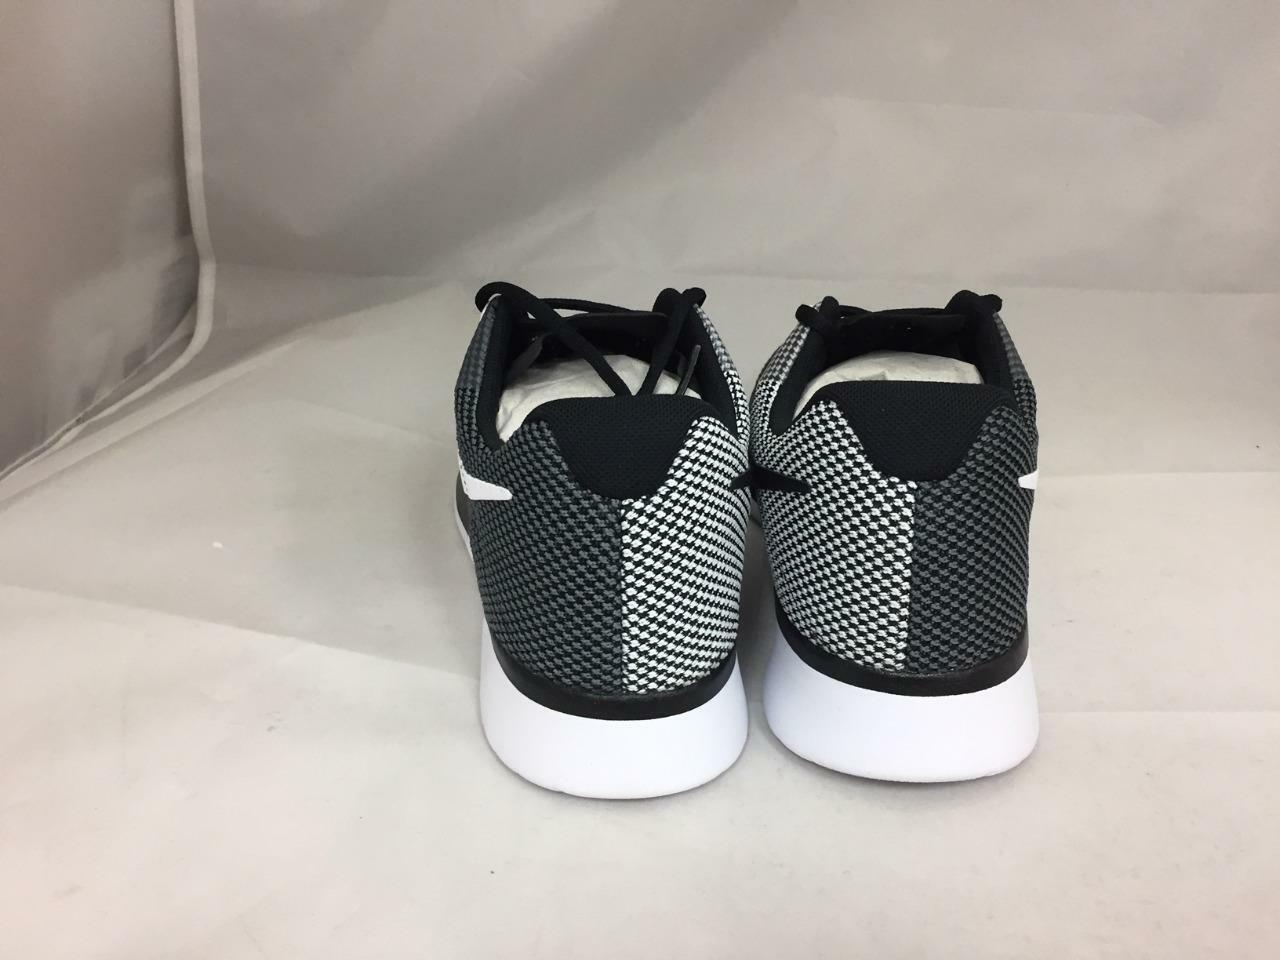 check out 0d734 bb76b ... Man s Woman s NEW MEN S NIKE TANJUN TANJUN TANJUN RACER 921669-002  Reliable quality Has ...